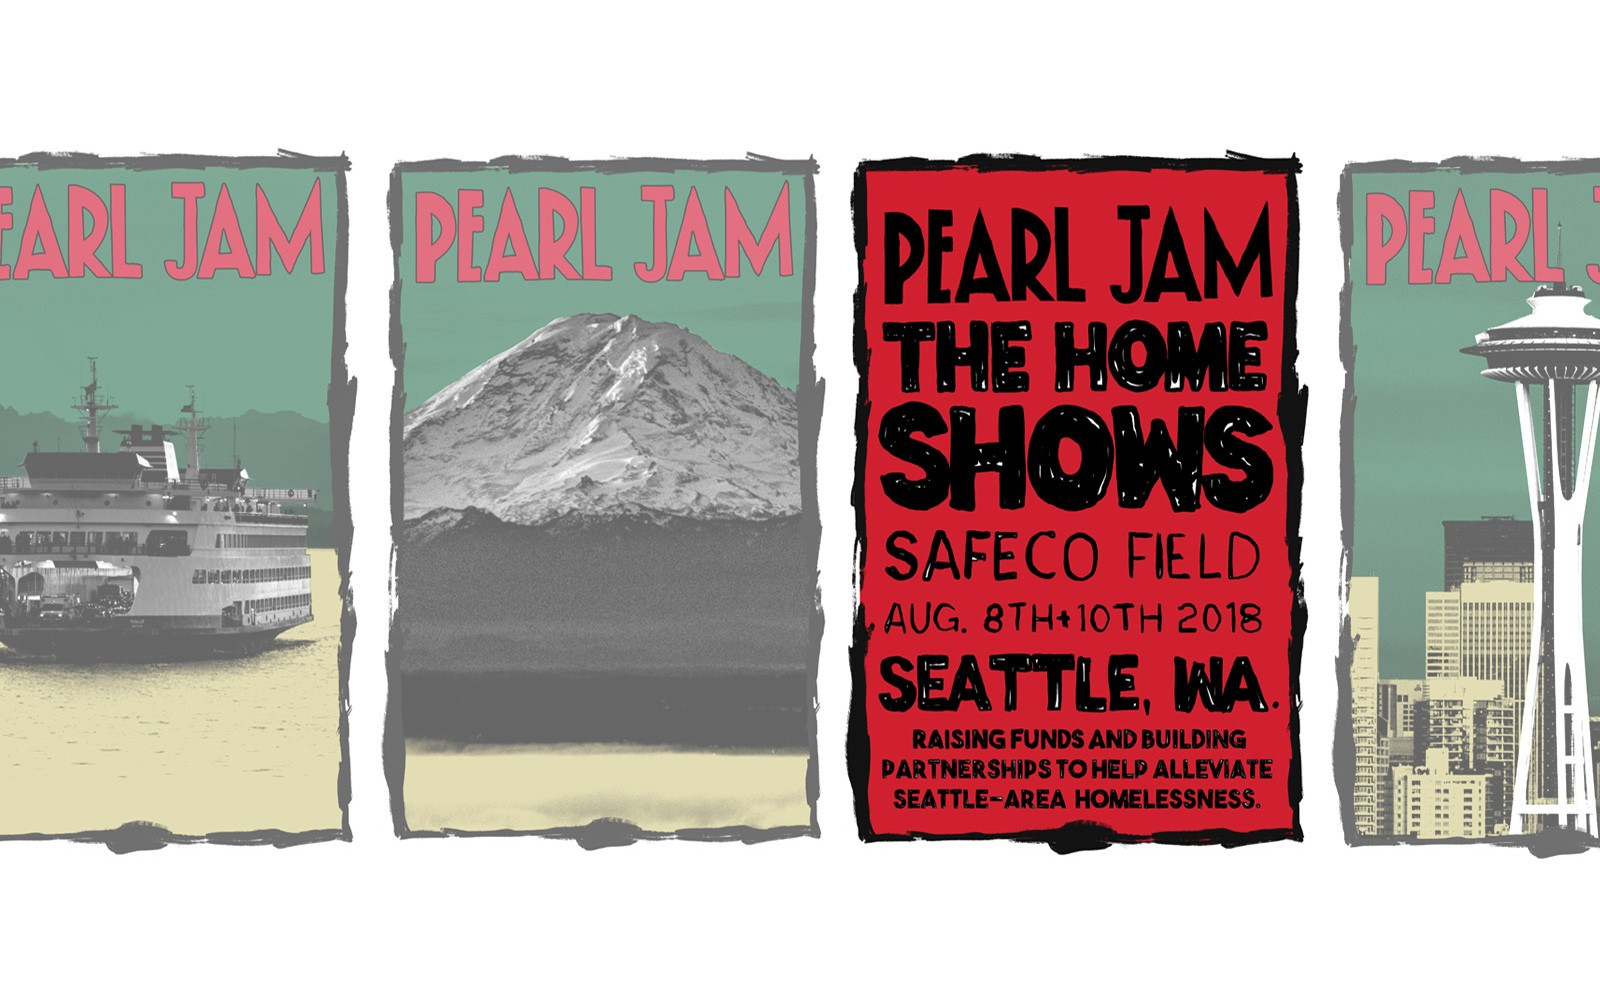 Pearl Jam at Safeco Field in Seattle WA on Wed Aug 8 Fri Aug 10